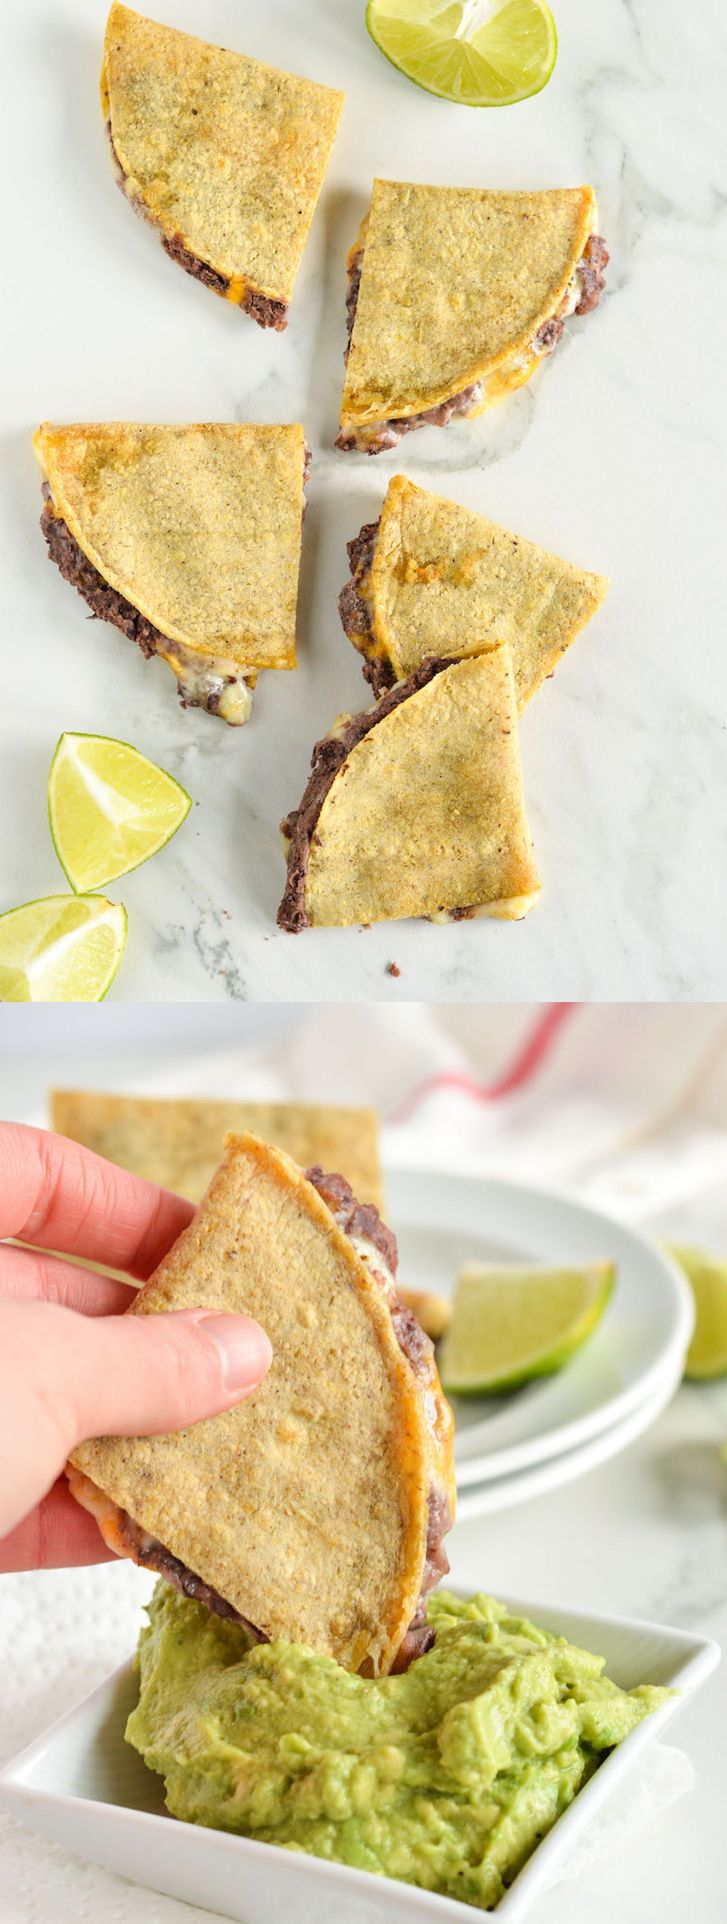 Easy Cheesy Black Bean Quesadillas with Guac | nourishedtheblog.com | A recipe for Easy Cheesy Black Bean Quesadillas with Guacamole made gluten free, vegetarian and delicious with corn tortillas, melted cheese and a spicy yet super flavourful black bean puree. Click through for this recipe.